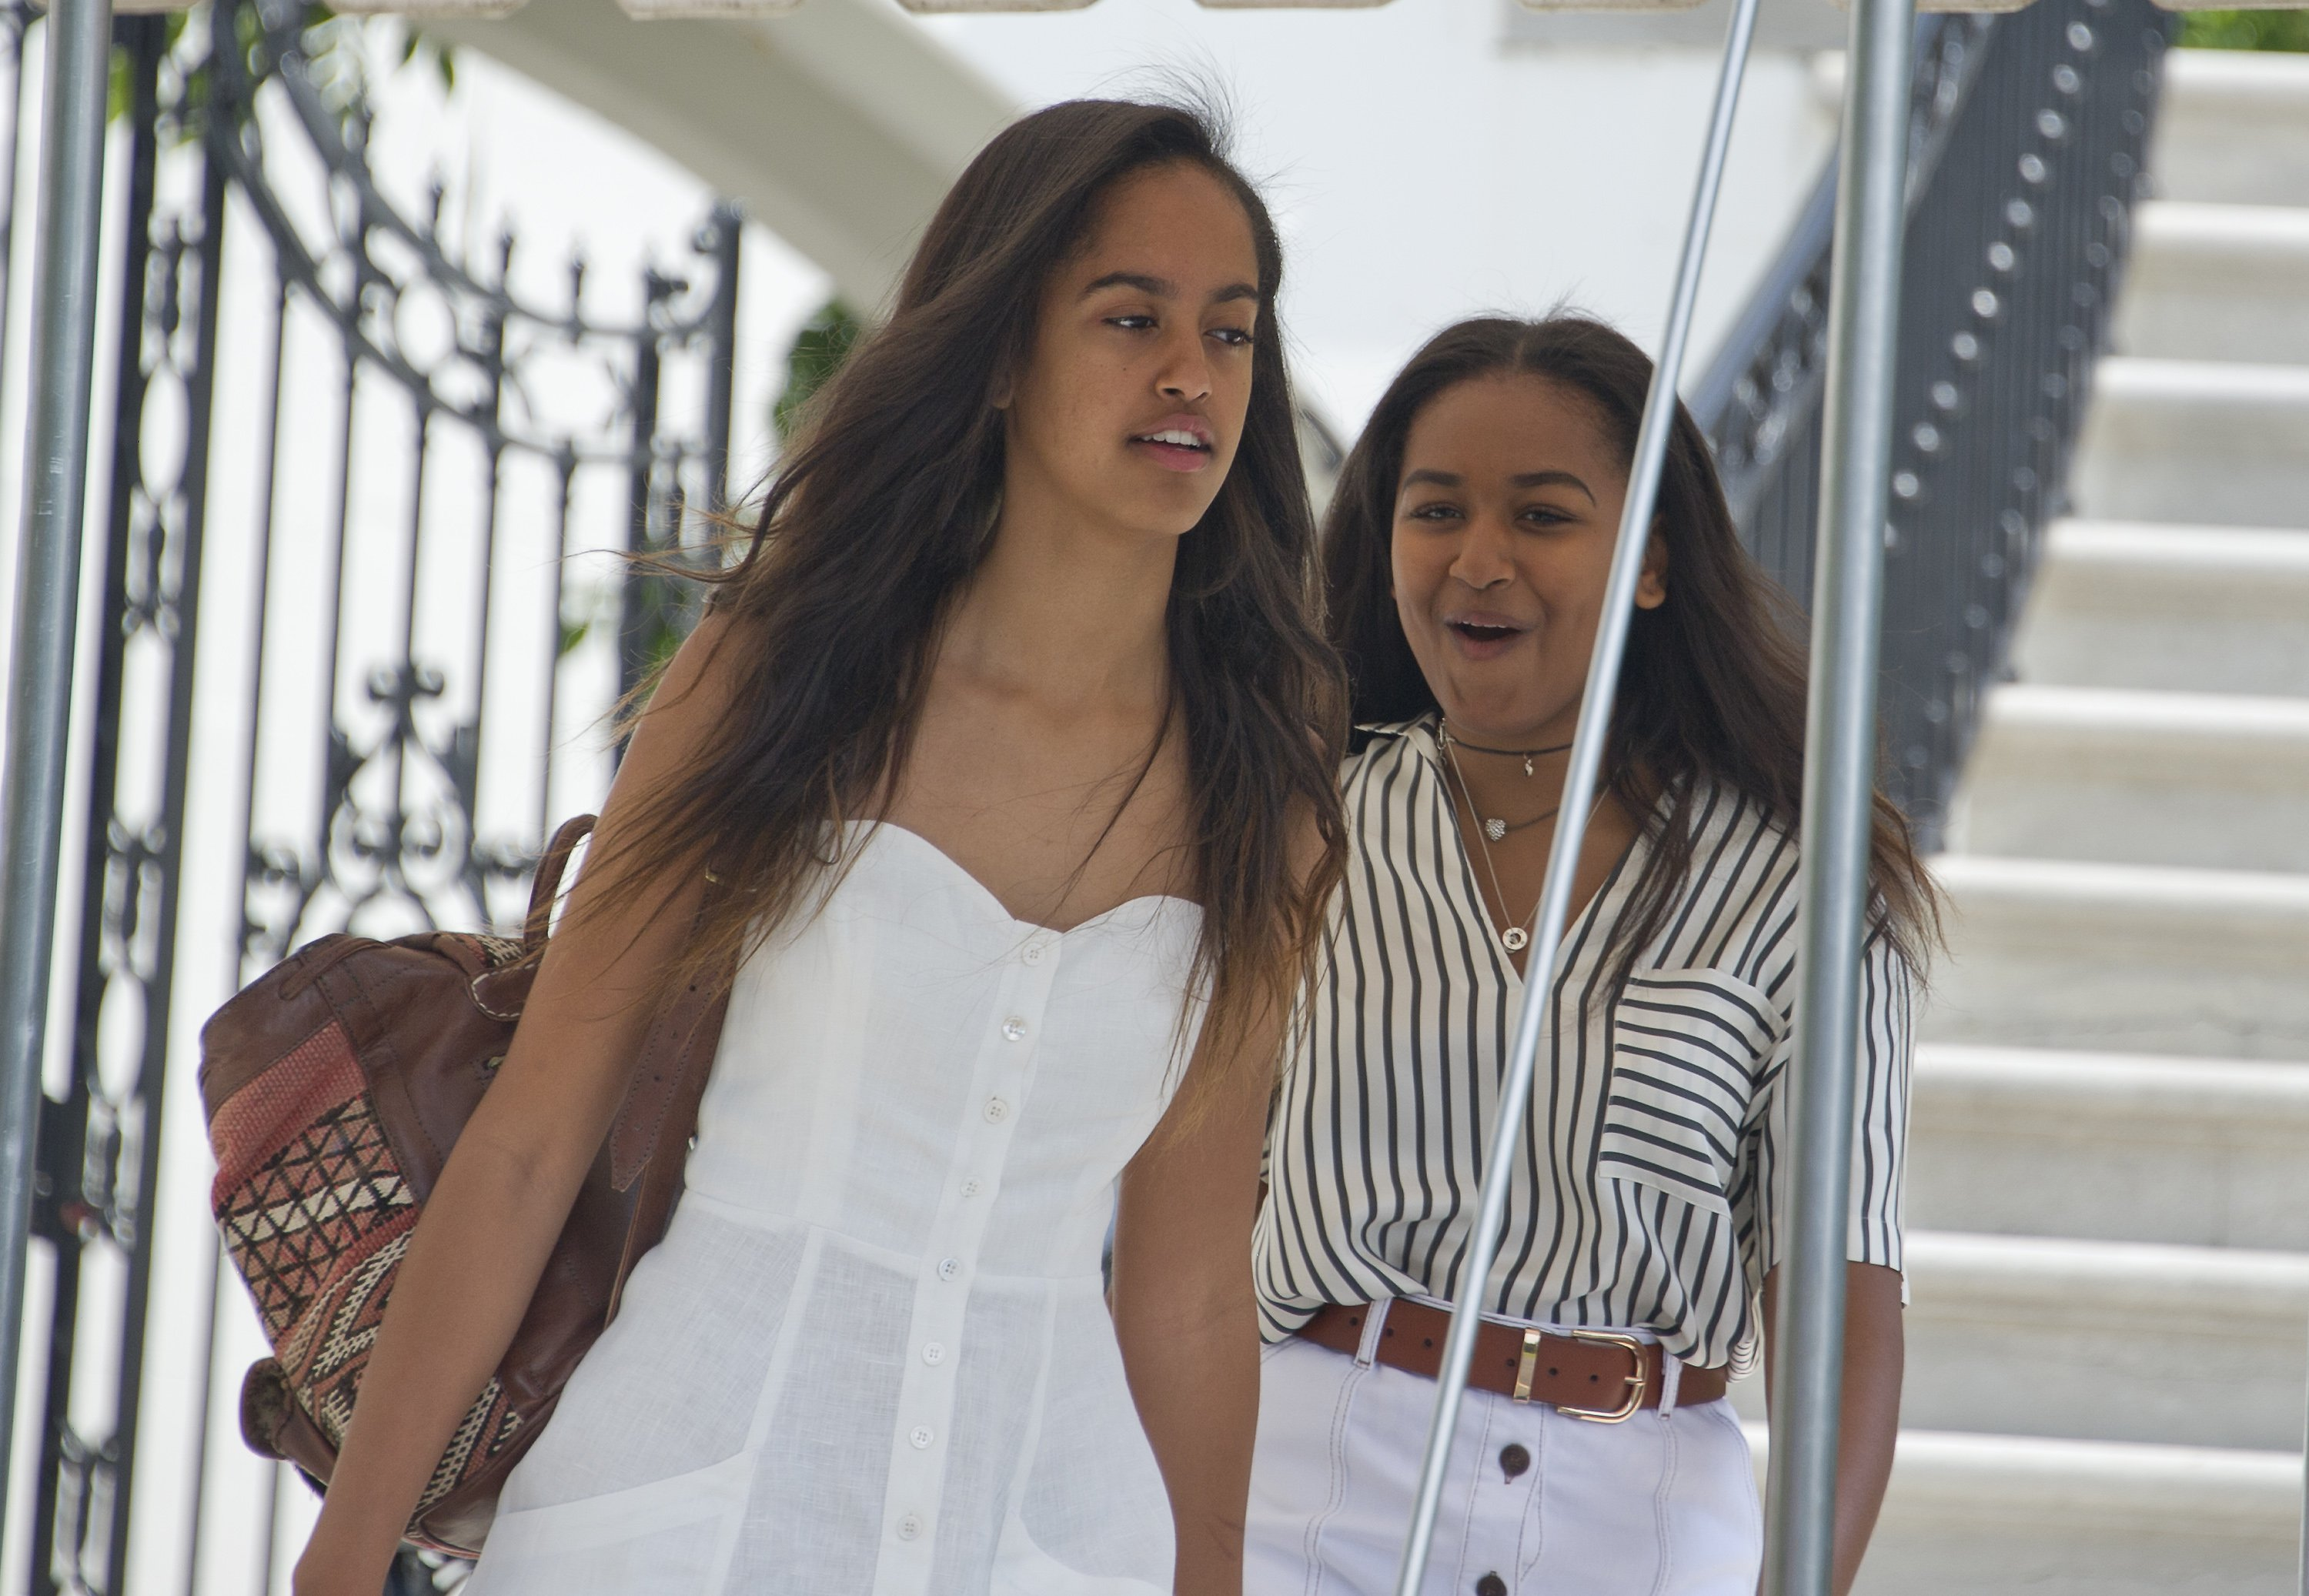 Malia and Sasha Obama depart the White House August 6, 2016   Photo: GettyImages